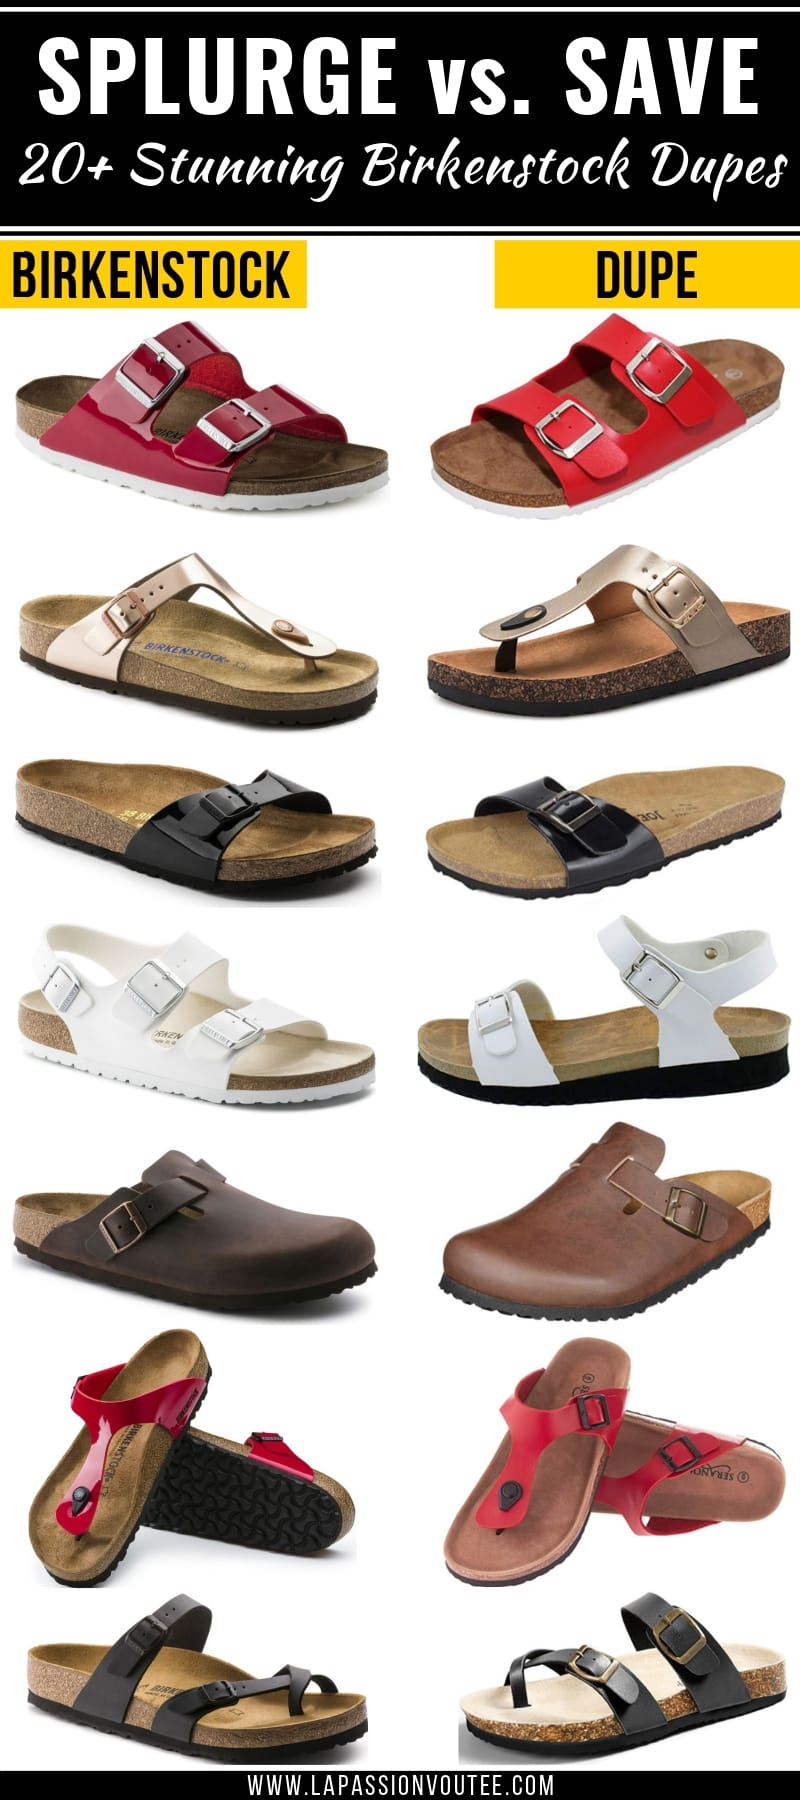 25+ Birkenstock look alikes and dupes that are way more affordable with the same quality and functionality as the original sandals. You're going to love these amazing alternatives to Birkenstock, you'll be back for more dupes! This post is all about the best designer dupes, Birkenstock Look Alike Sandals, Birkenstock Outfit, Knock Off Birkenstocks, best Birkenstock knock-off.